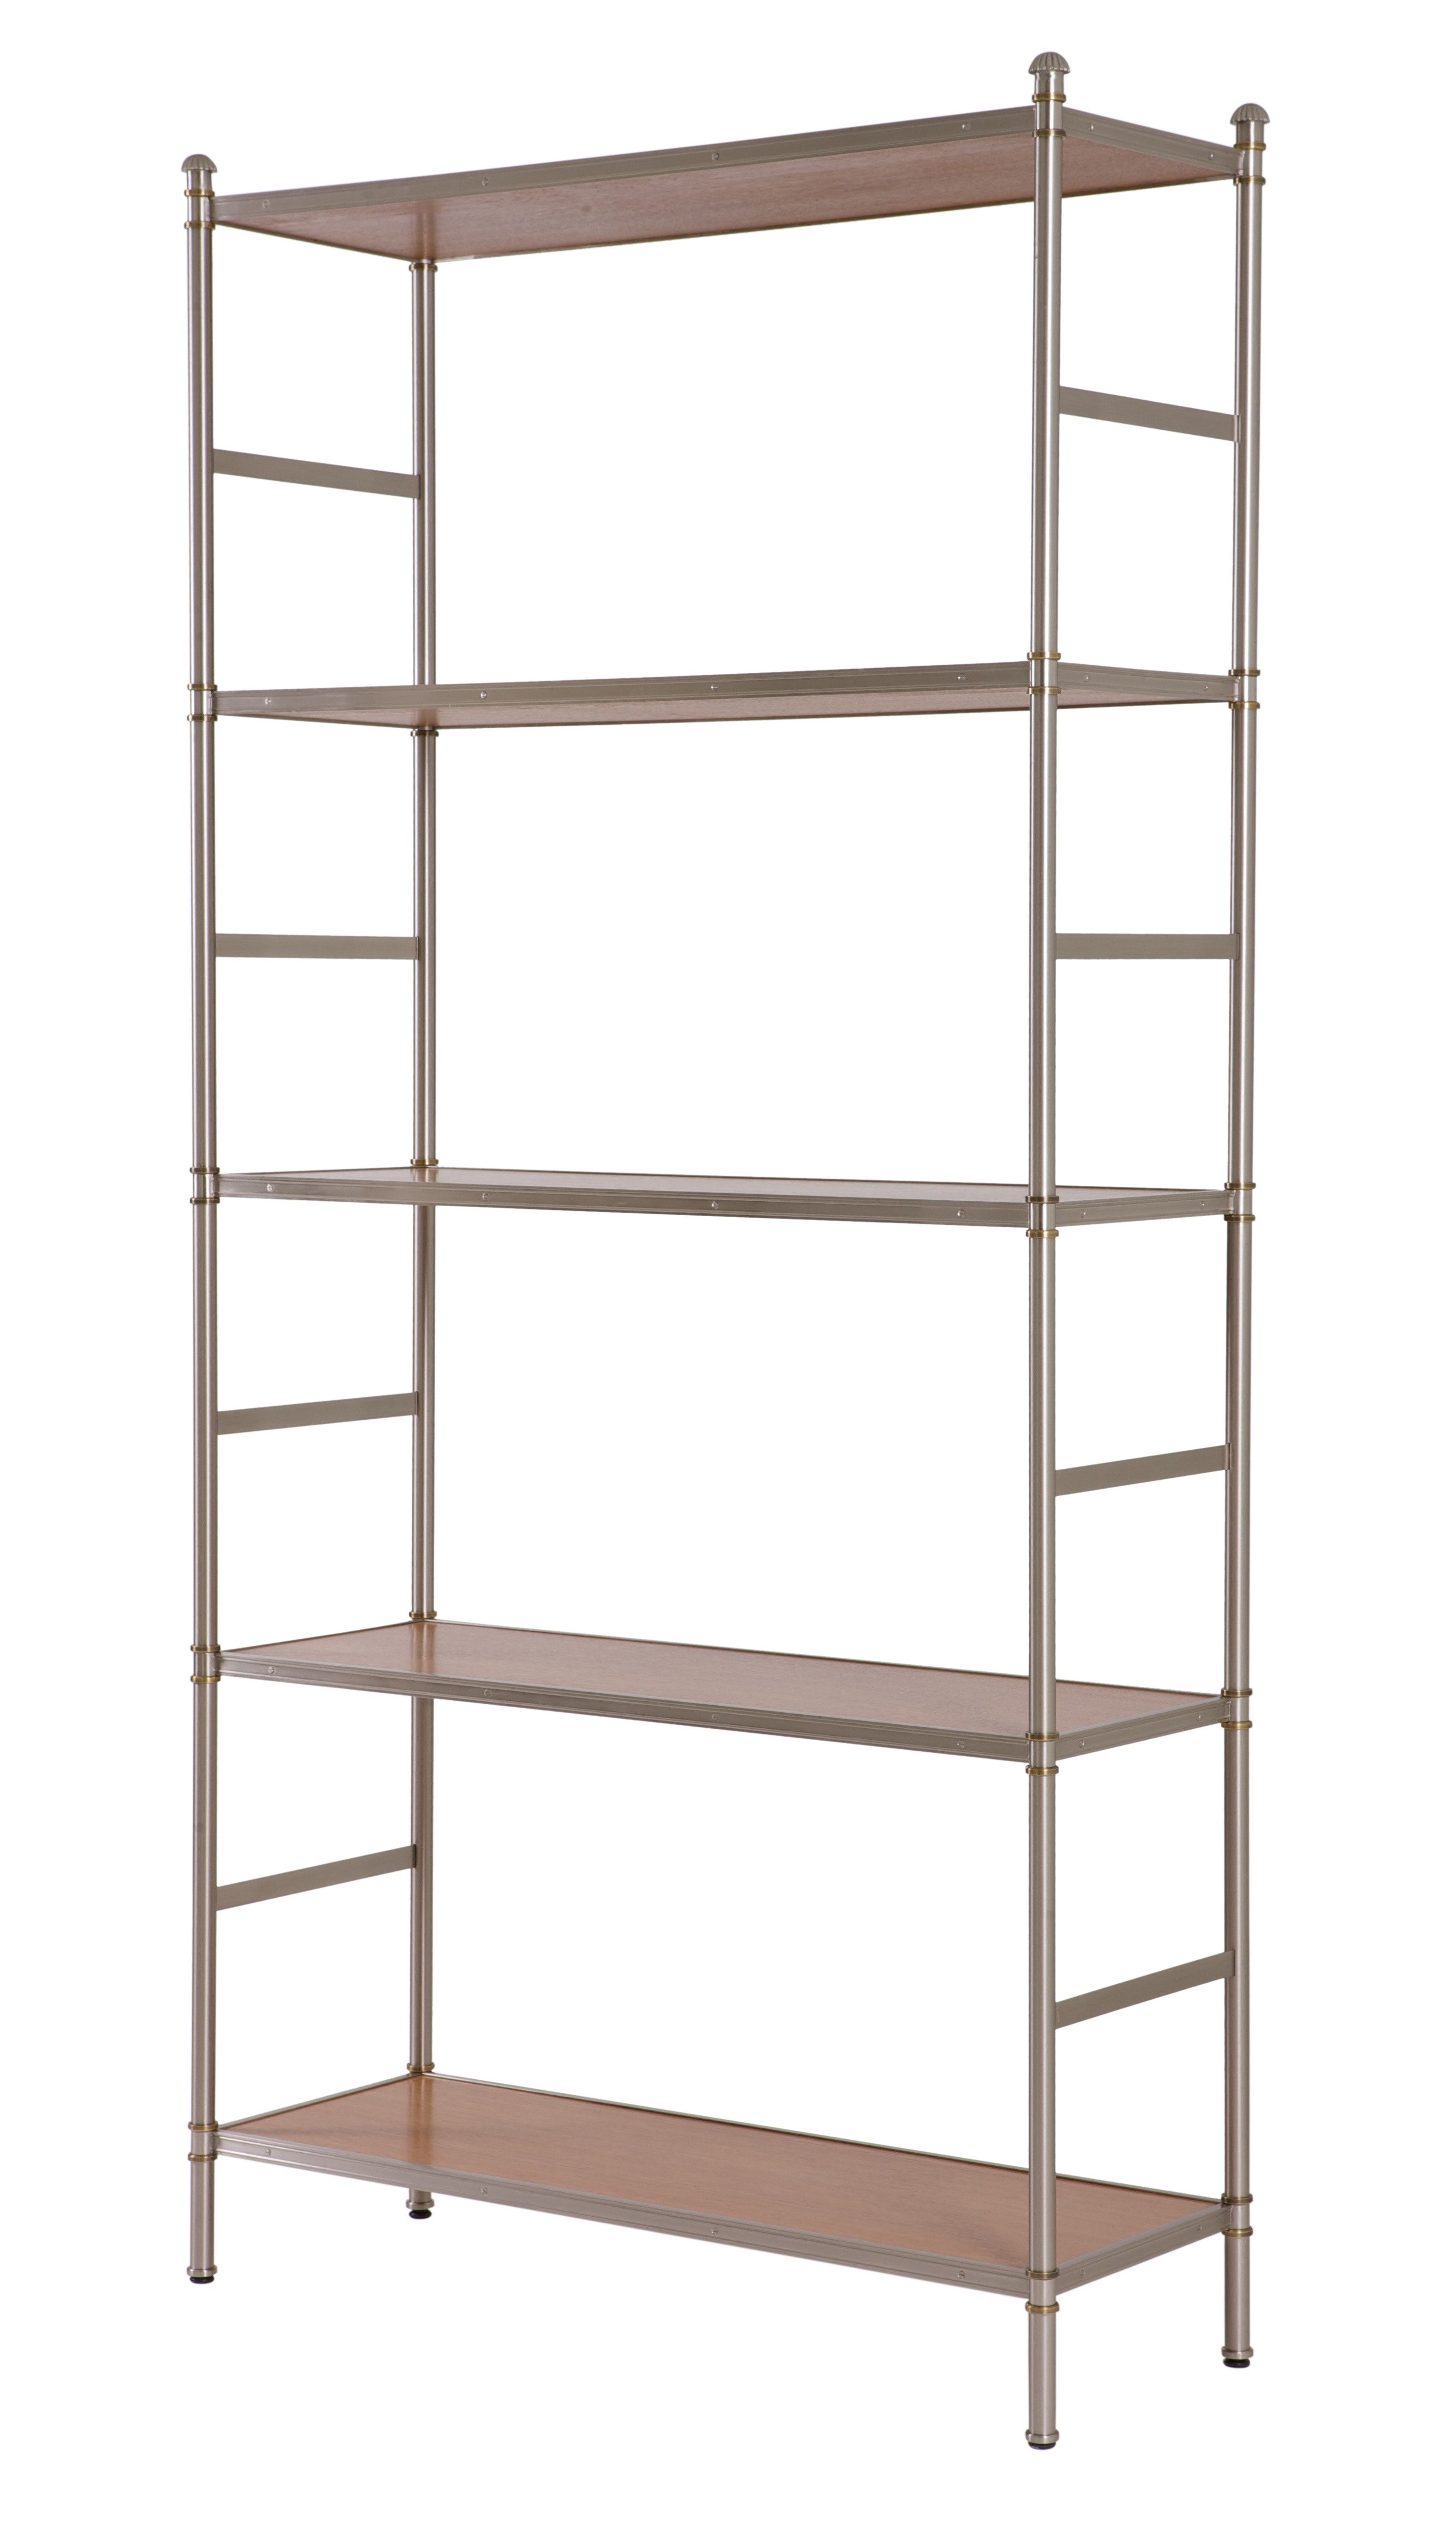 The Cole Porter Etagere Traditional Bookcases Tageres  # Etagere Cache Cable